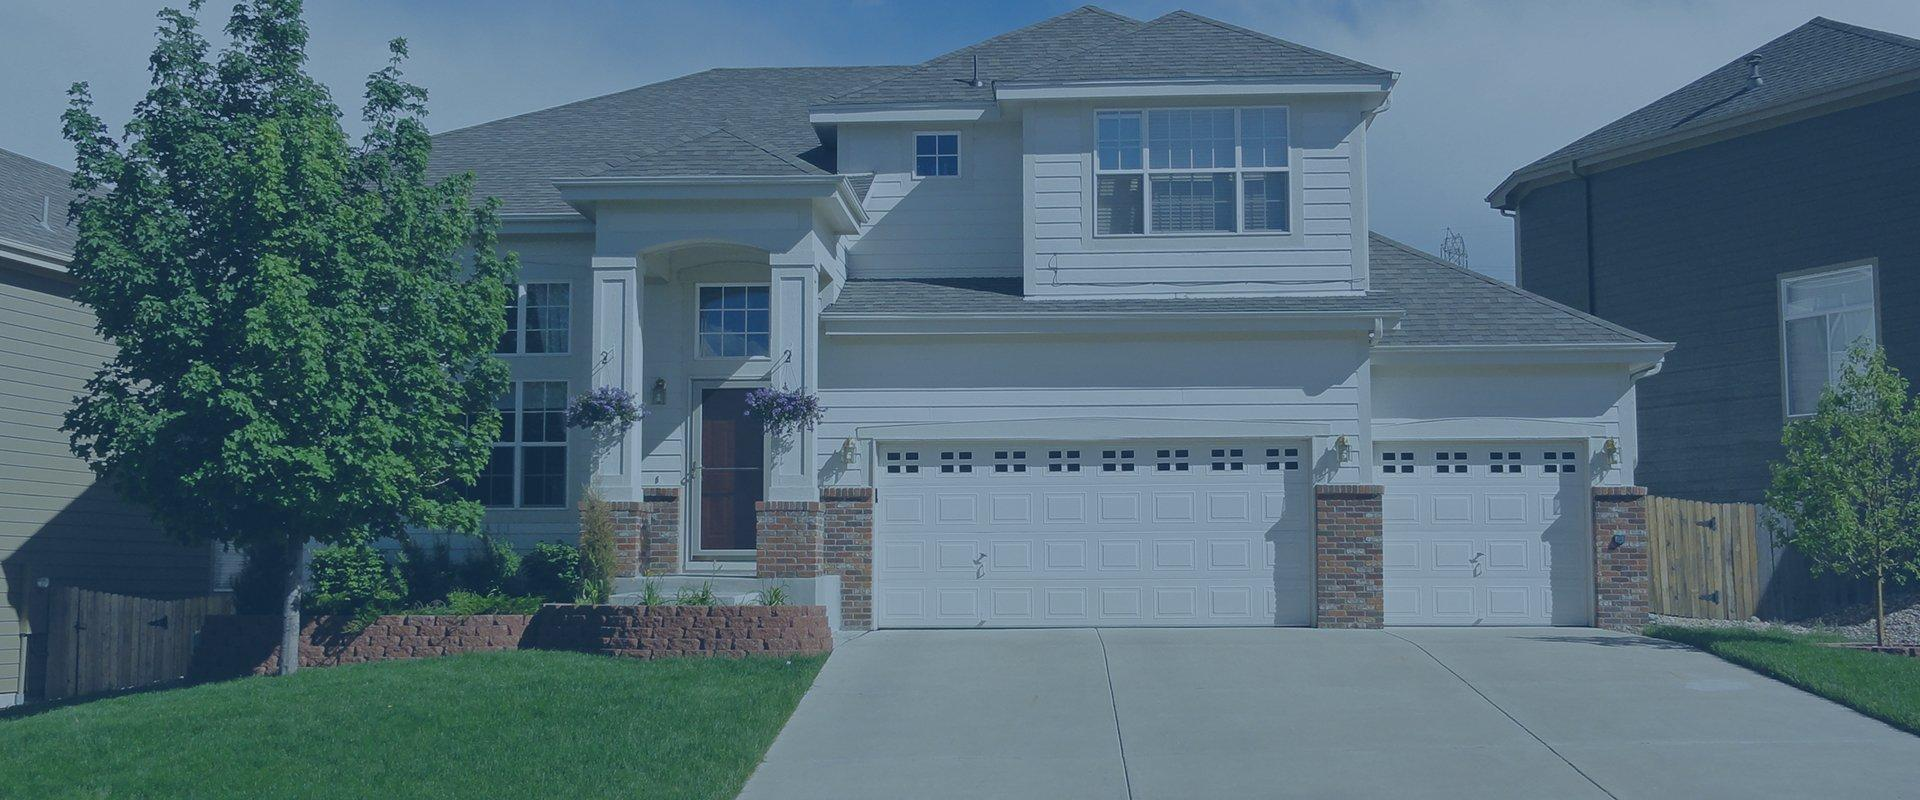 nice home with paved driveway